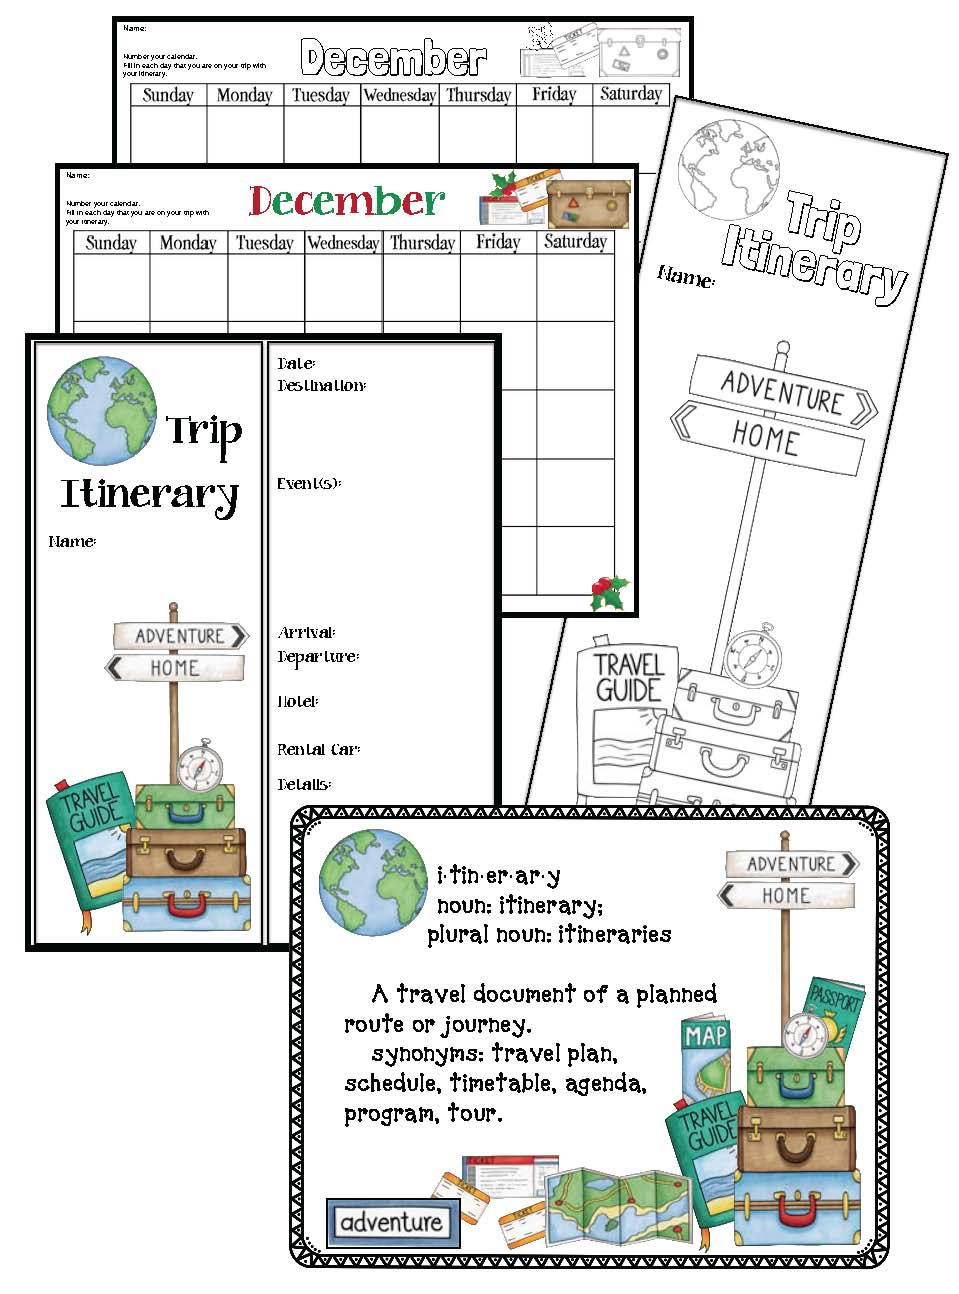 Christmas Around The World activities, Xmas around the world activities, Christmas crafts, geography activities for early elementary, gingerbread activities, passports for school, geography passports, passport craft, passport stamps, suitcase stamps, suitcase stickers, travel stickers, passport stamps, maps for students to color, maps for students to label, world maps, December writing prompts,